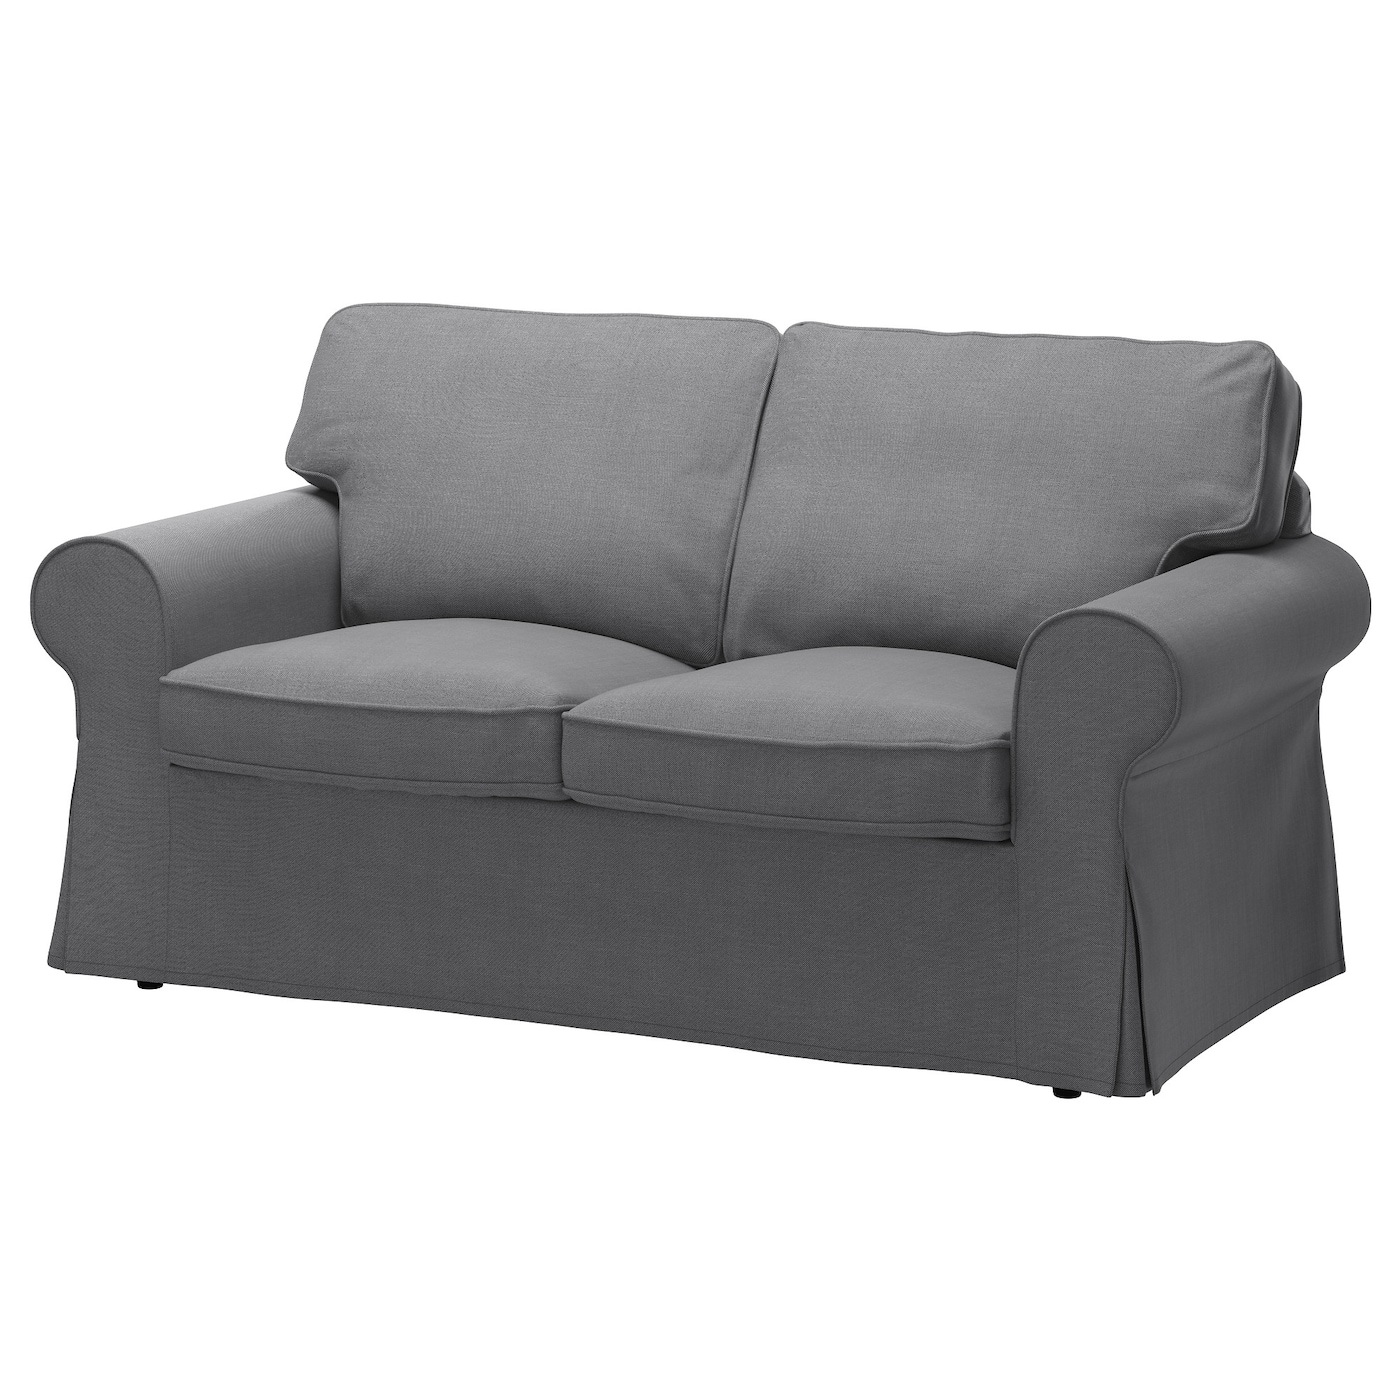 Superbe IKEA EKTORP Two Seat Sofa 10 Year Guarantee. Read About The Terms In The